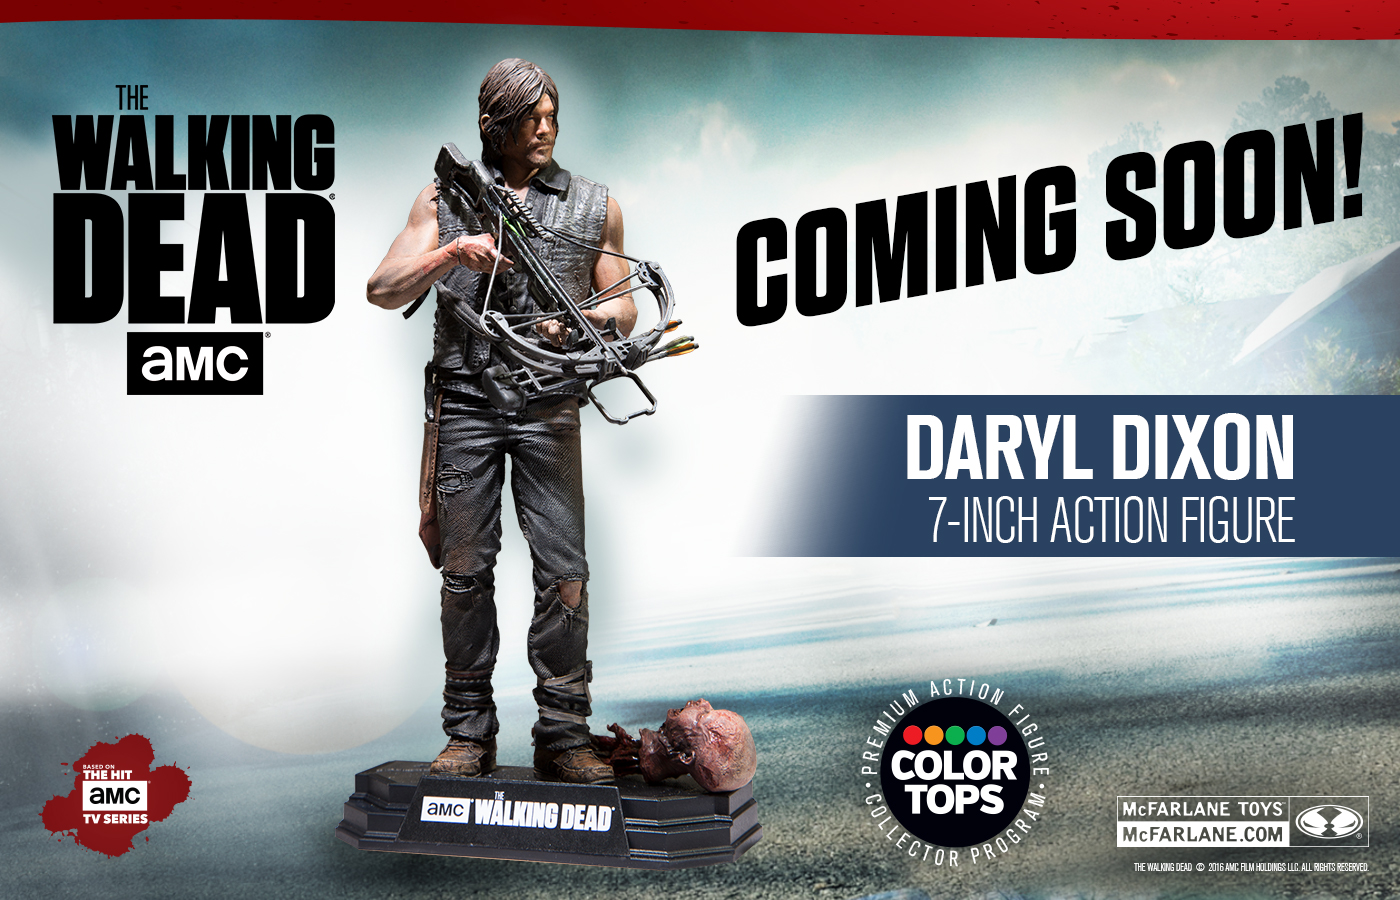 McFarlane Toys The Walking Dead 7″ Color Tops Daryl Dixon Figure Announced